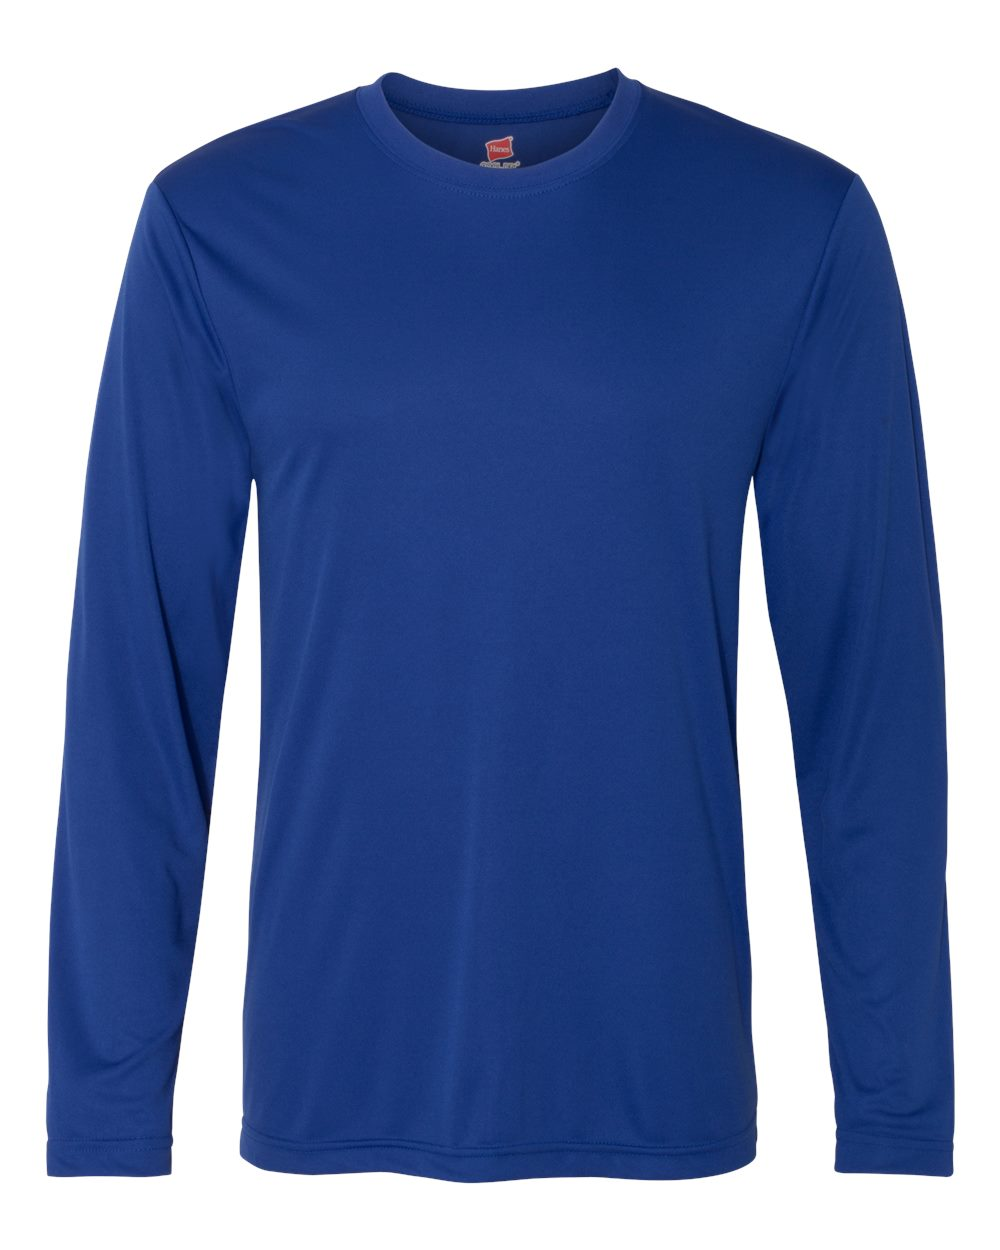 Details about  /Hanes Mens Cool Dri Long Sleeve Performance T Shirt Blank Plain 482L up to 3XL